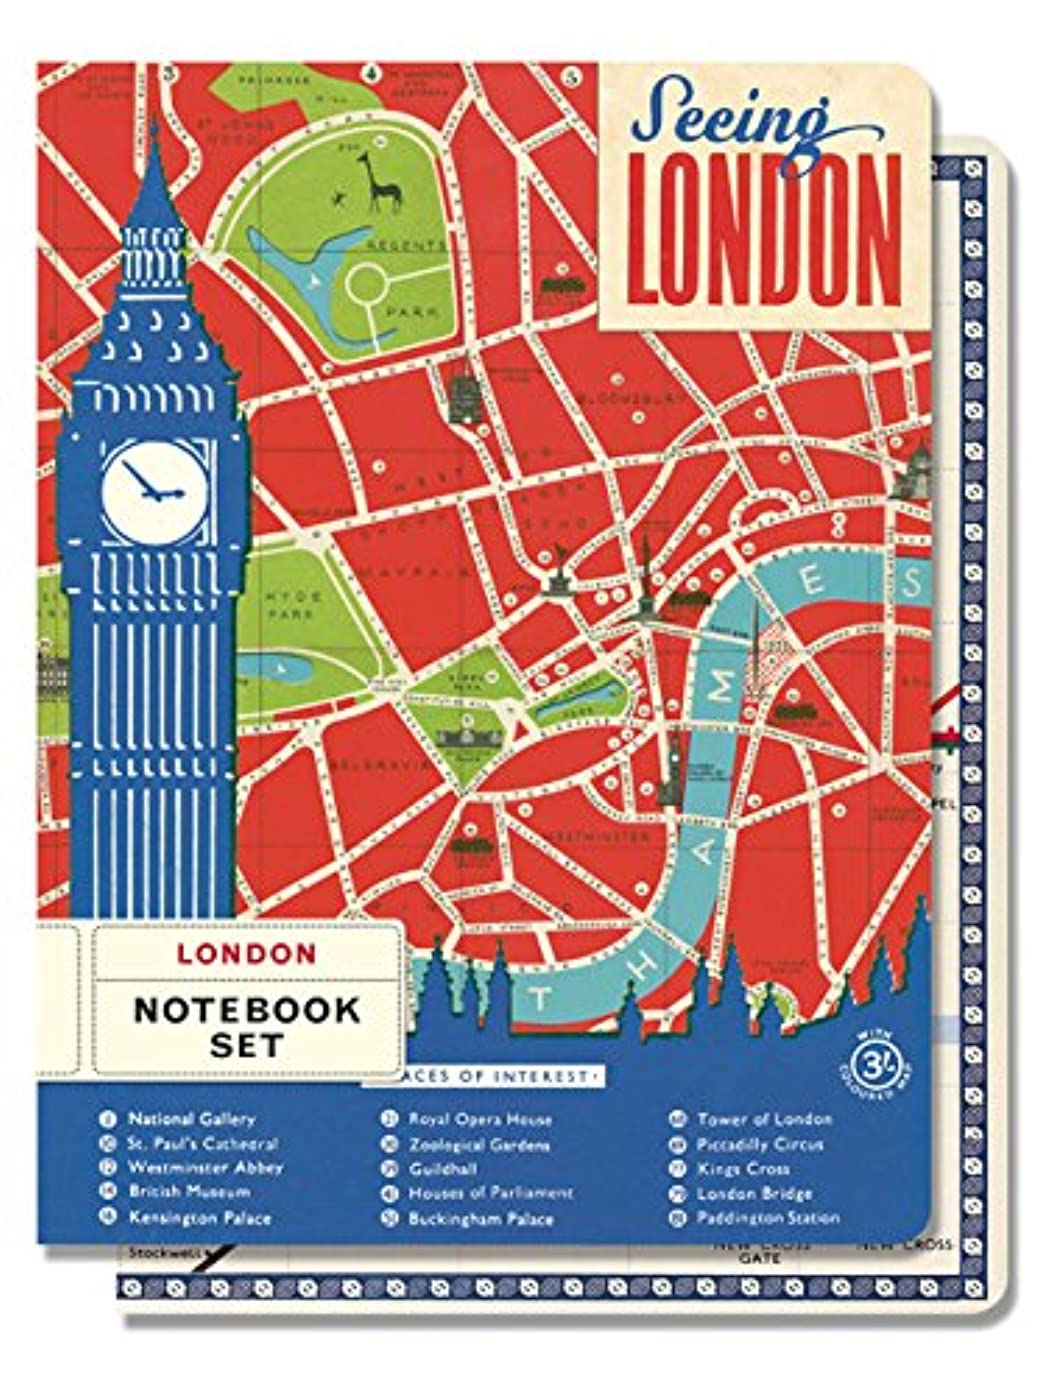 Cavallini Papers & Co. Notebook Set Vintage London, 4-Inch by 5.5-Inch, 2 Notebooks 96 Pages